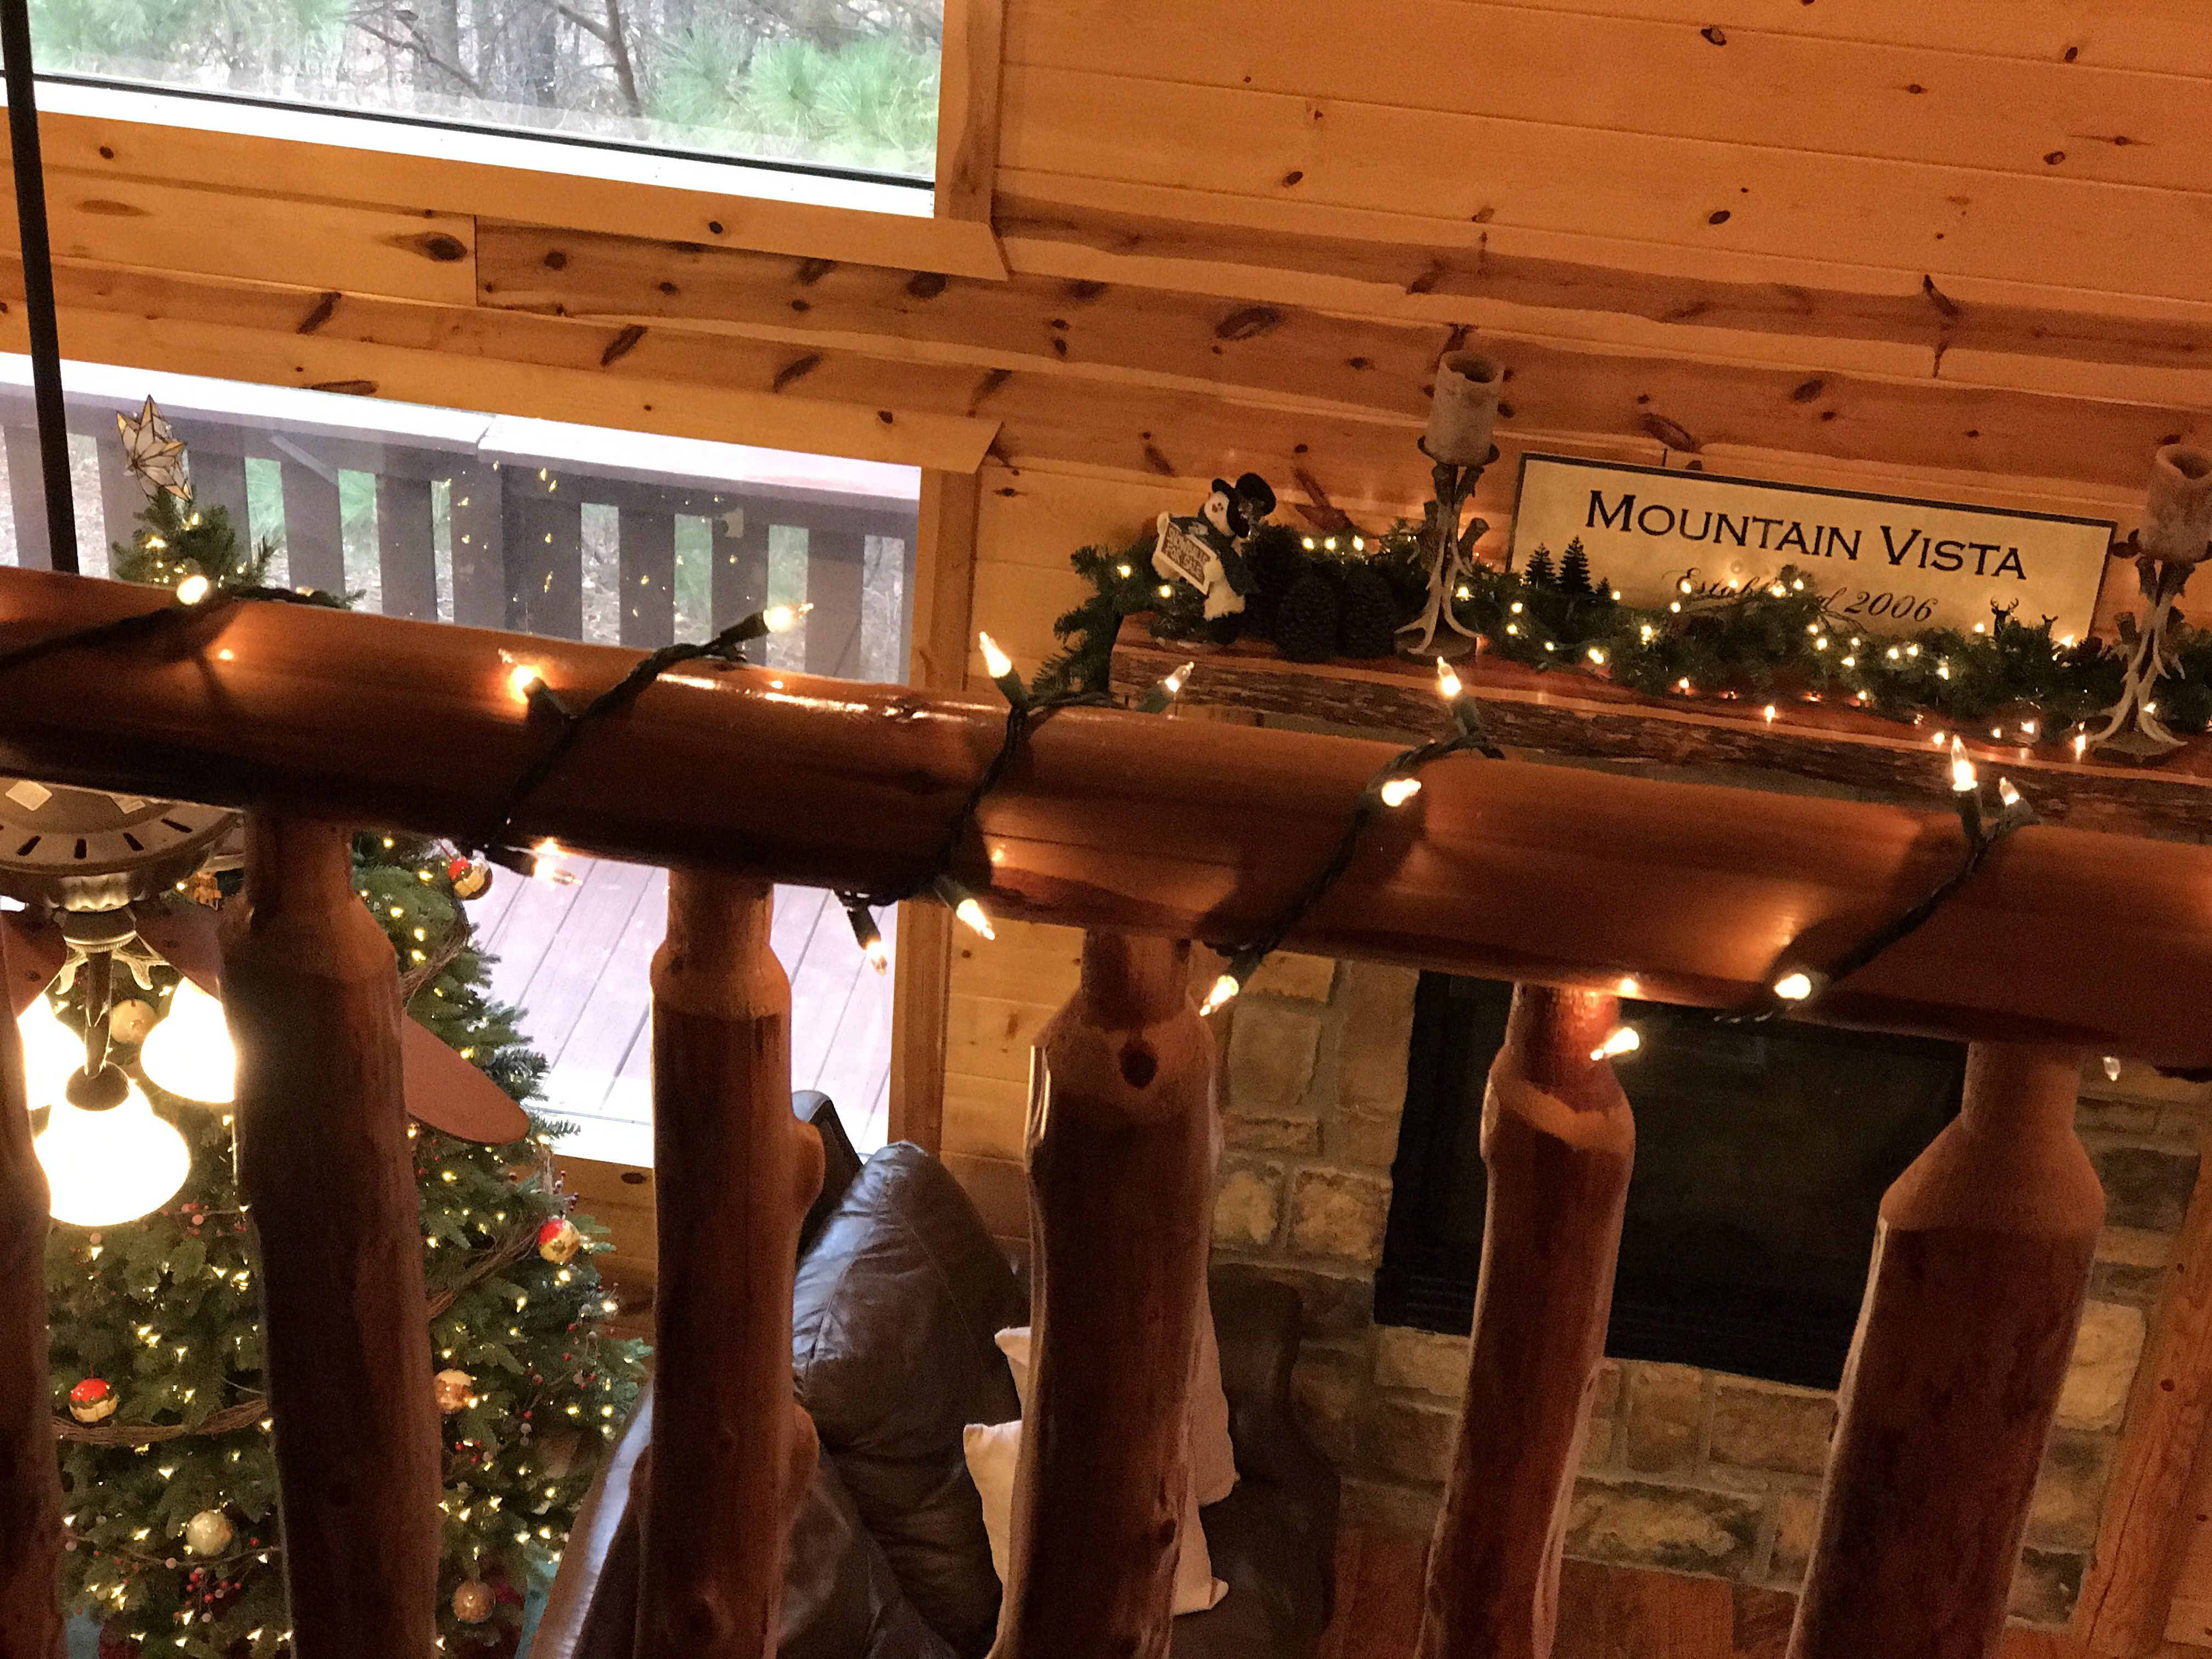 cabins dreamhouse beaver for house on free the is perfect beavers bend also cozy gathering get can a enjoy party away bachelorette or adventures family girls dream dsc couples pets roaming small cabin